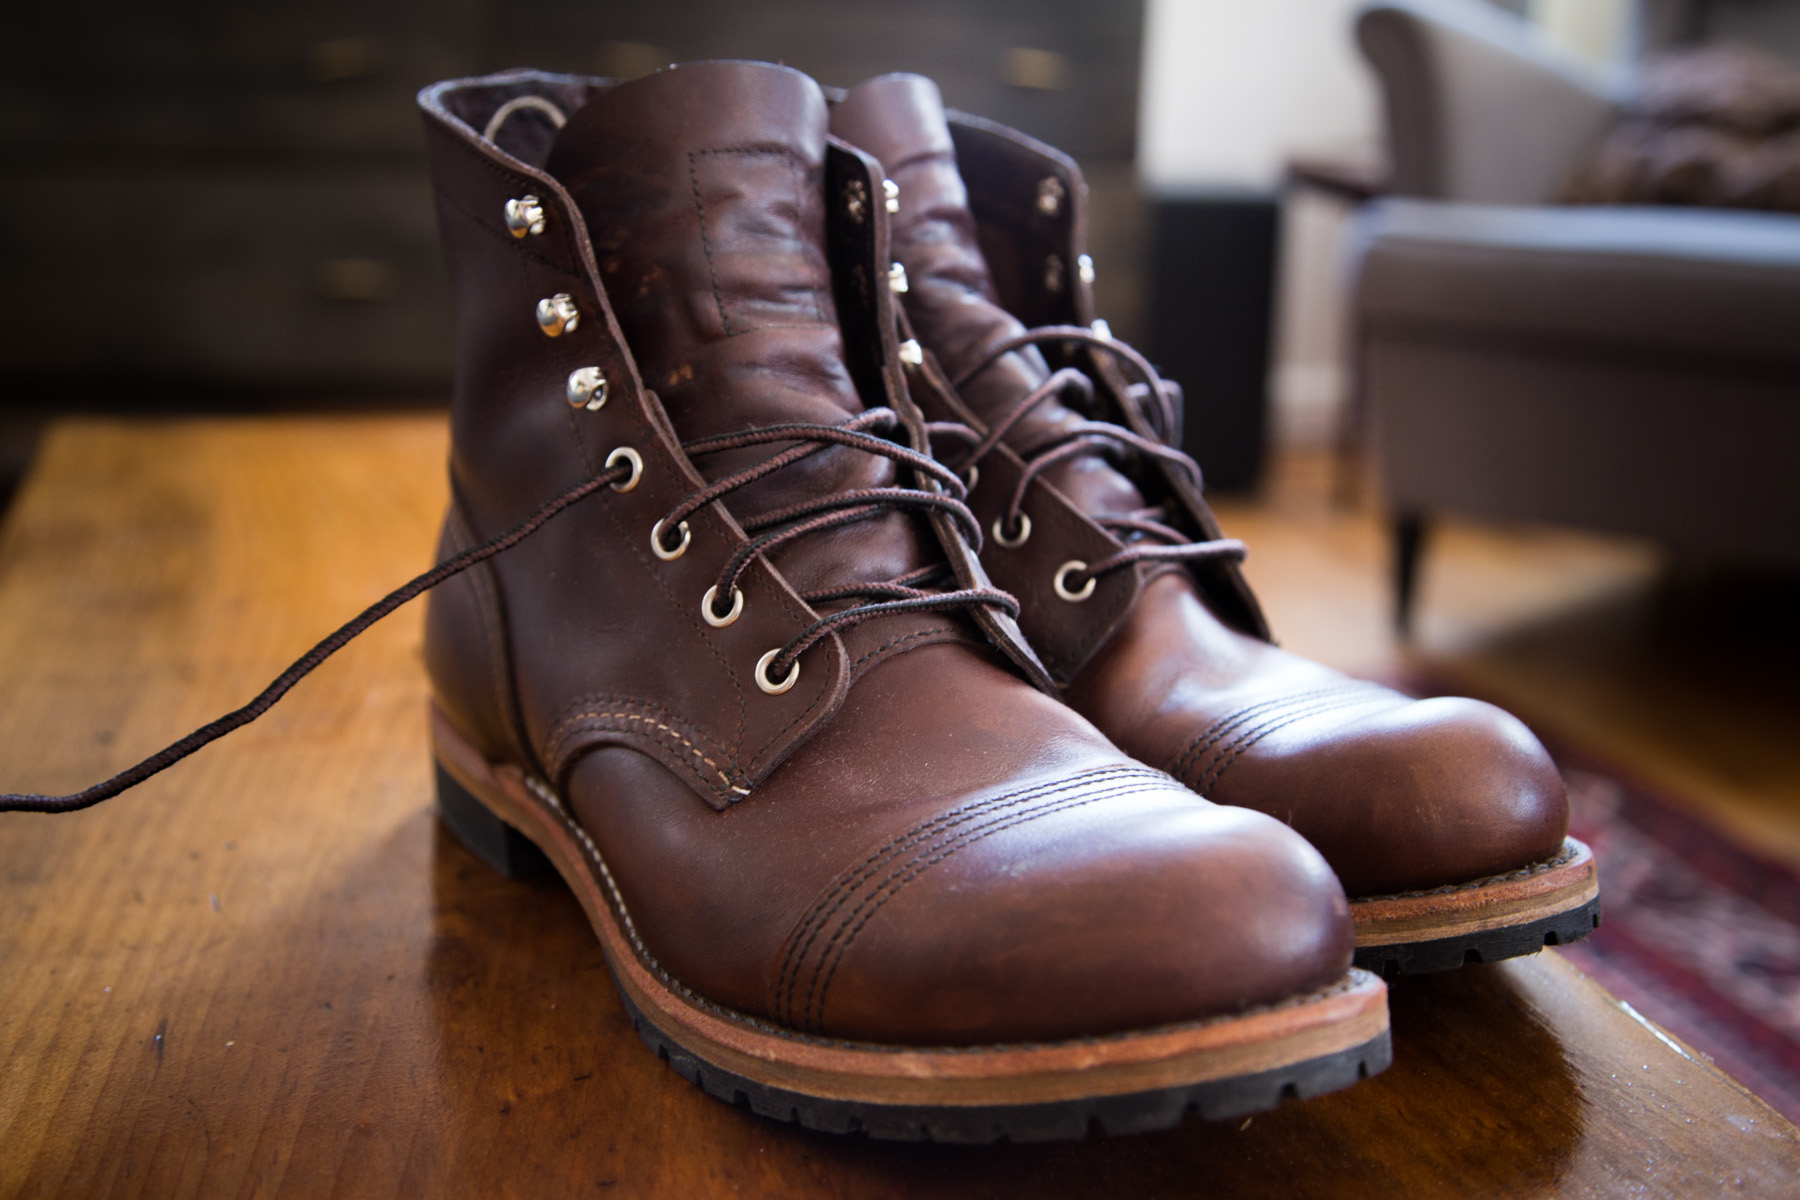 The new Red Wing Iron Rangers with Beckman soles.